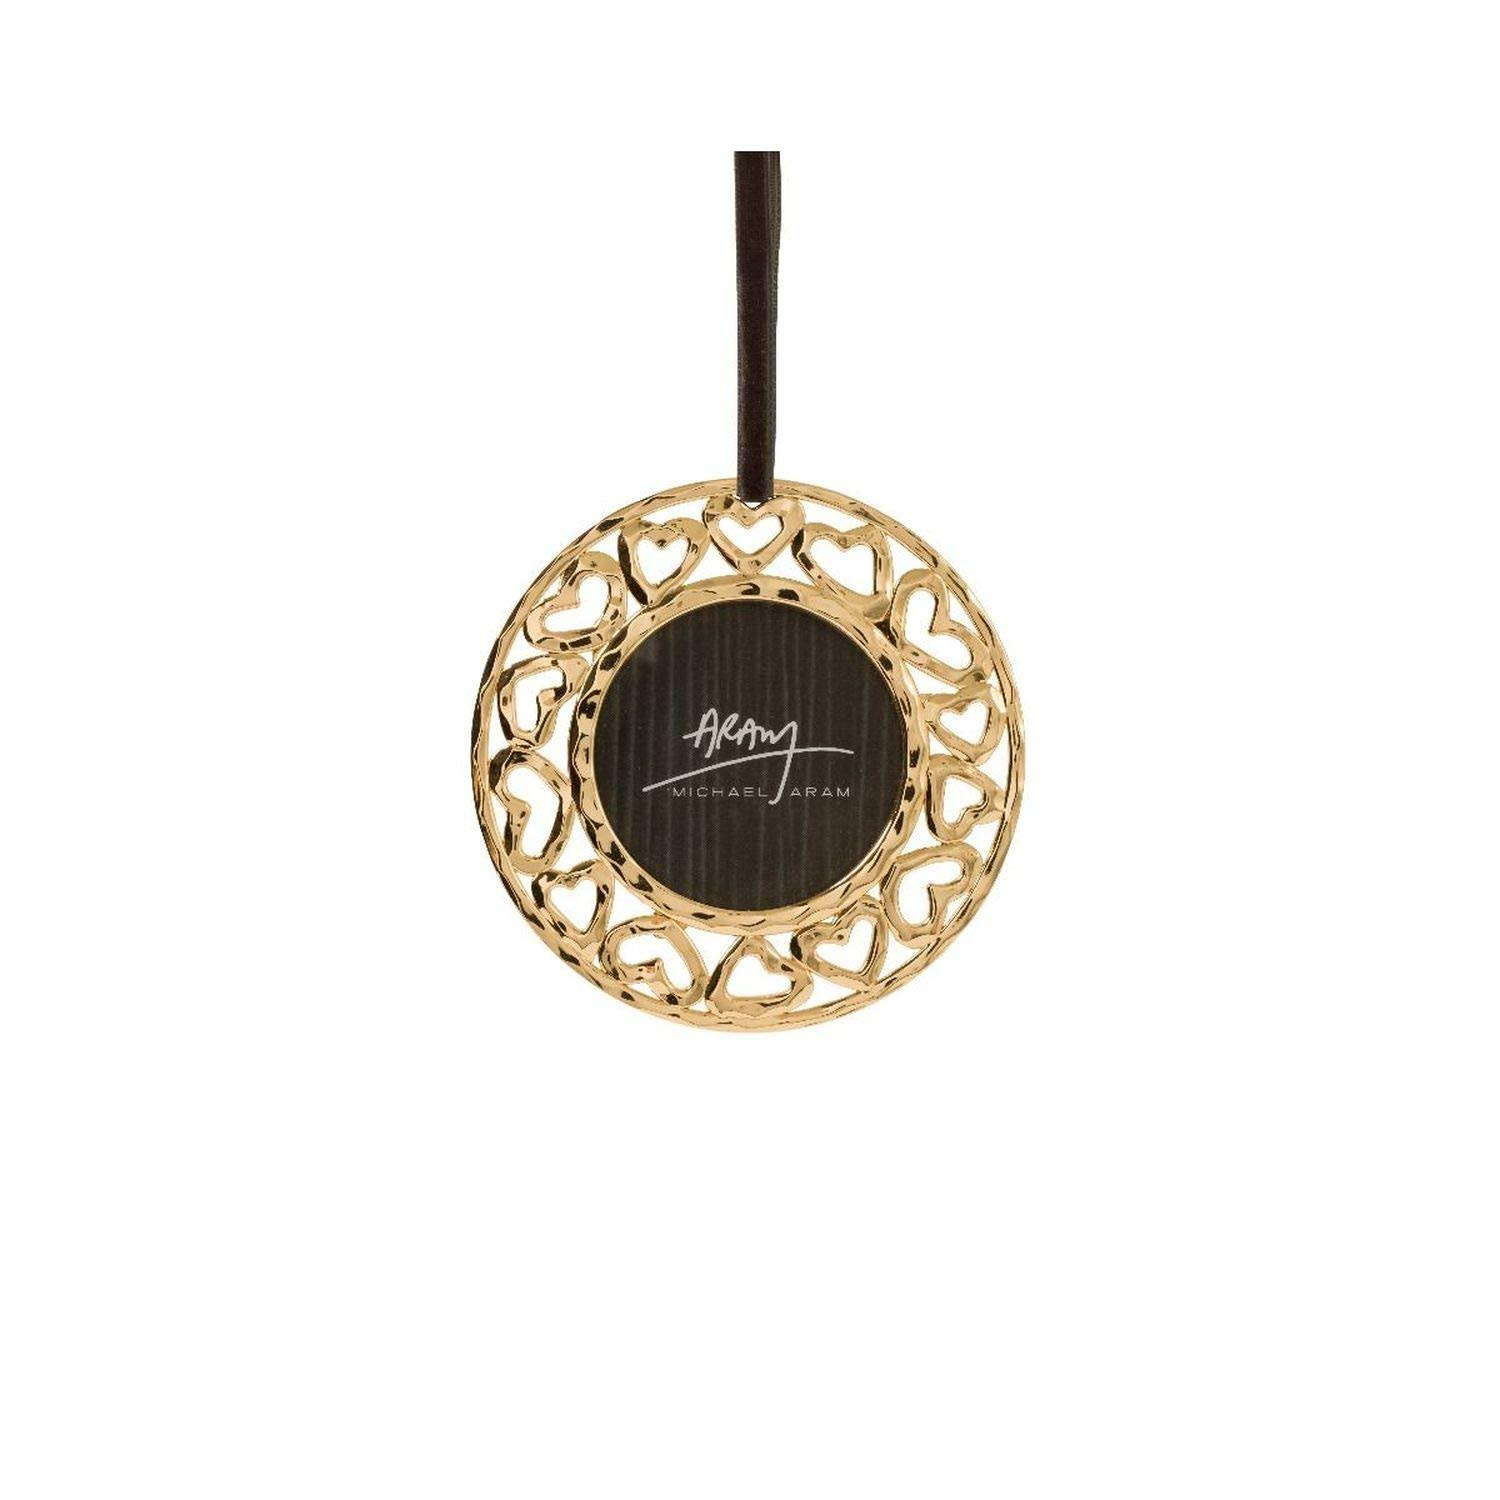 Michael Aram Gold Heart Frame Ornament